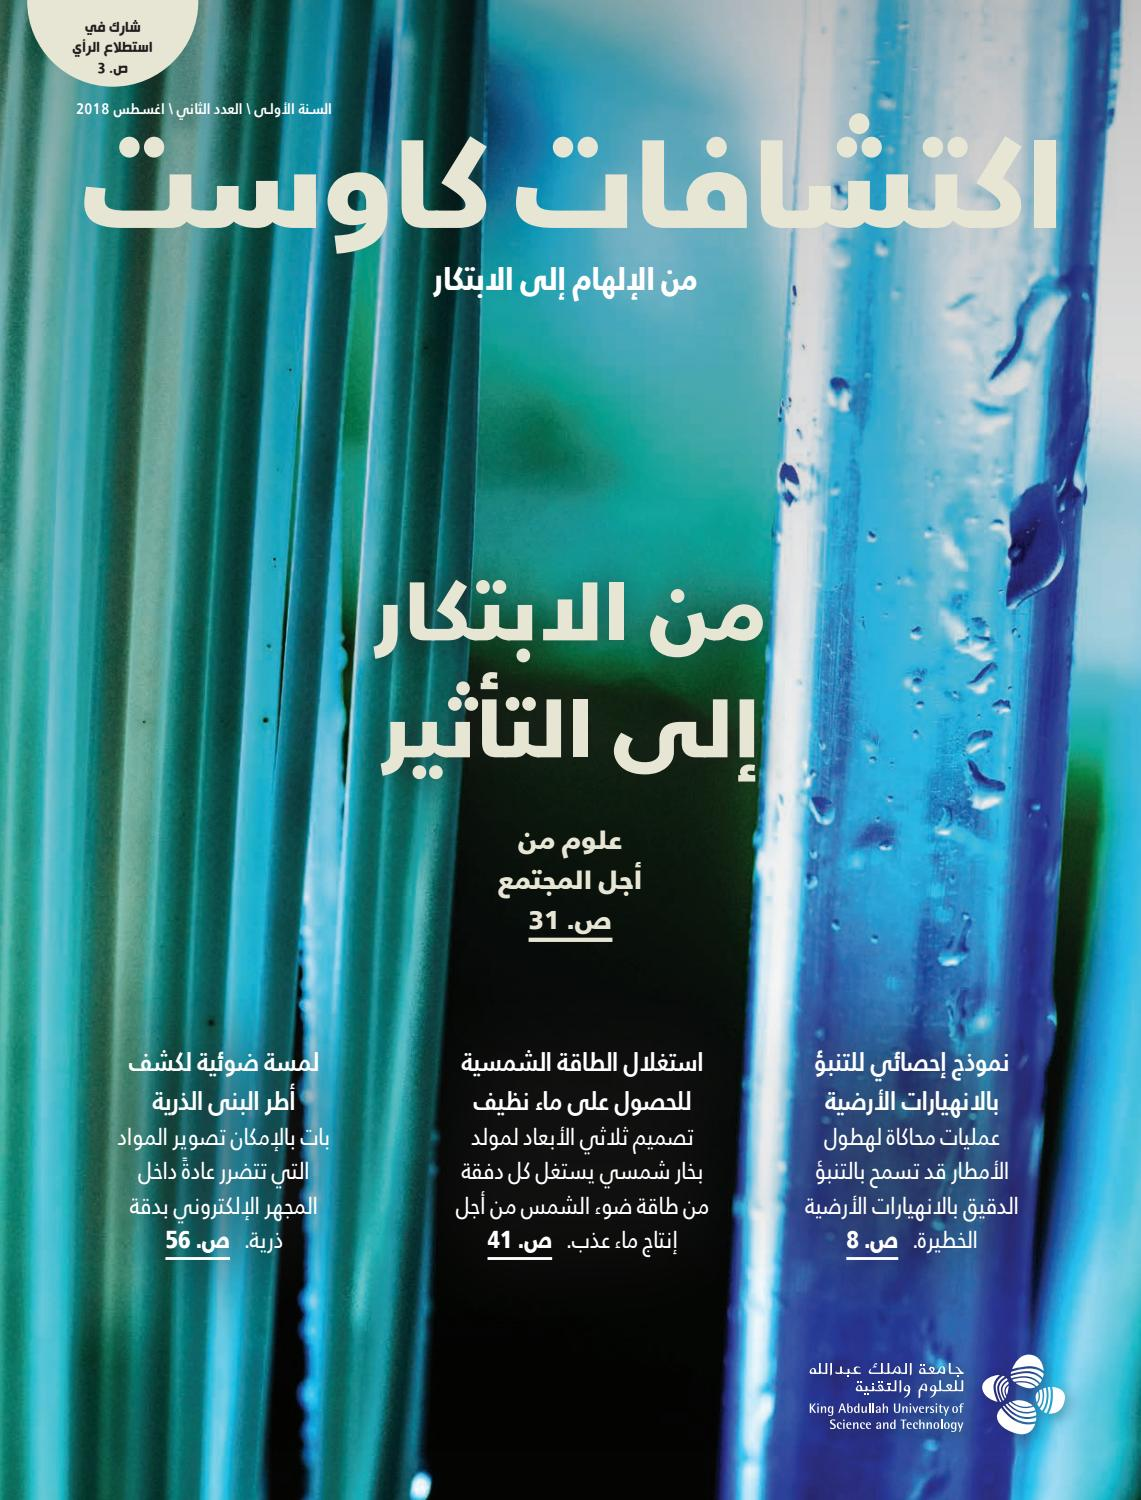 b6c958941 KAUST Discovery - Issue 6 - Arabic by KAUST - issuu